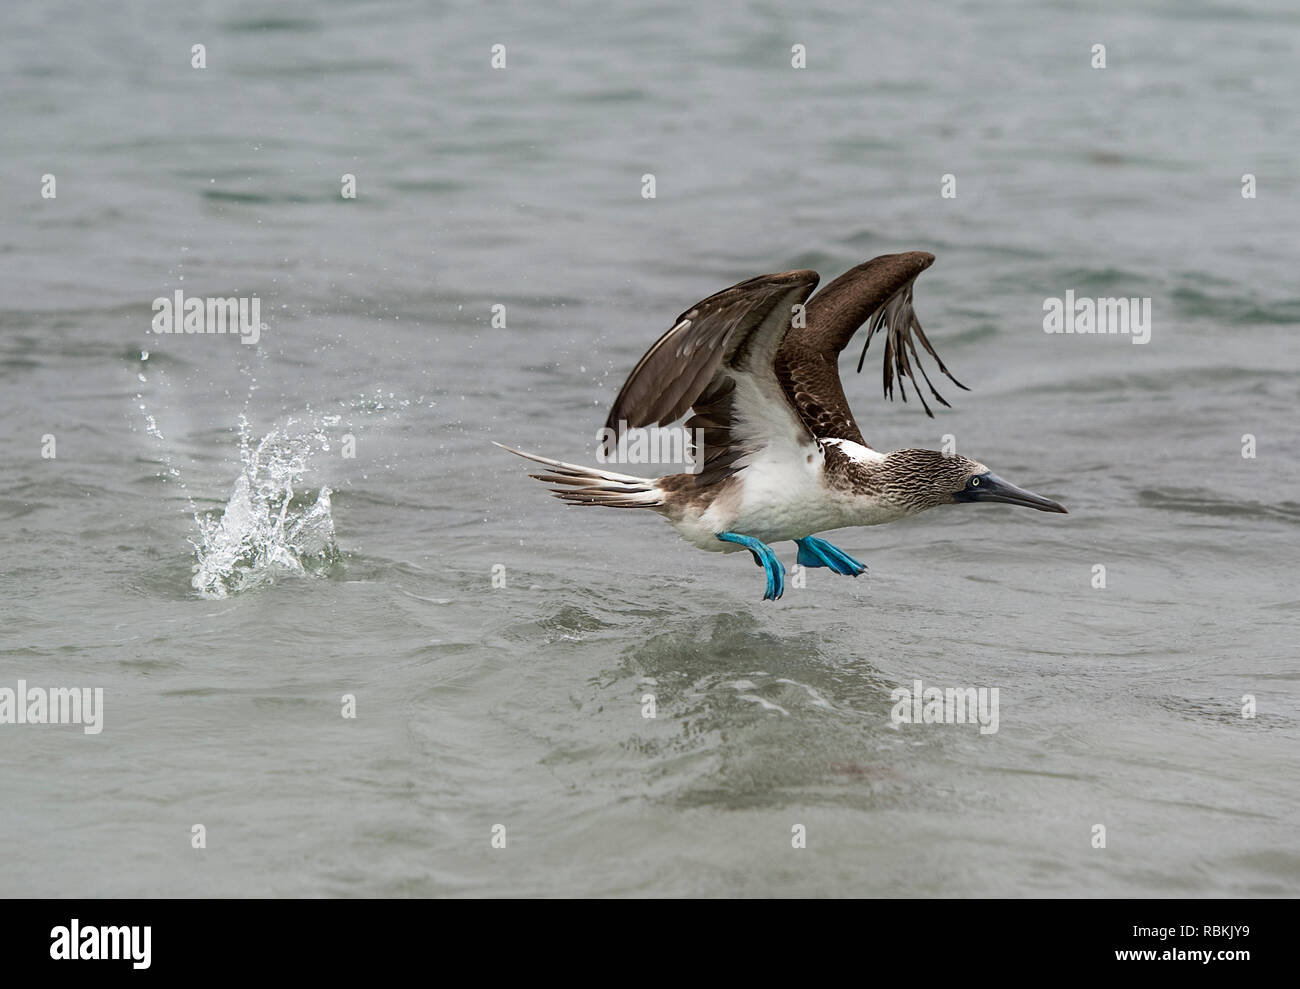 Blue-footed booby (Sula nebouxii) in flight, a marine bird of the boobies (Sulidae) family endemic to Galapagos, Isabela Island, Galapagos Islands, Ec - Stock Image